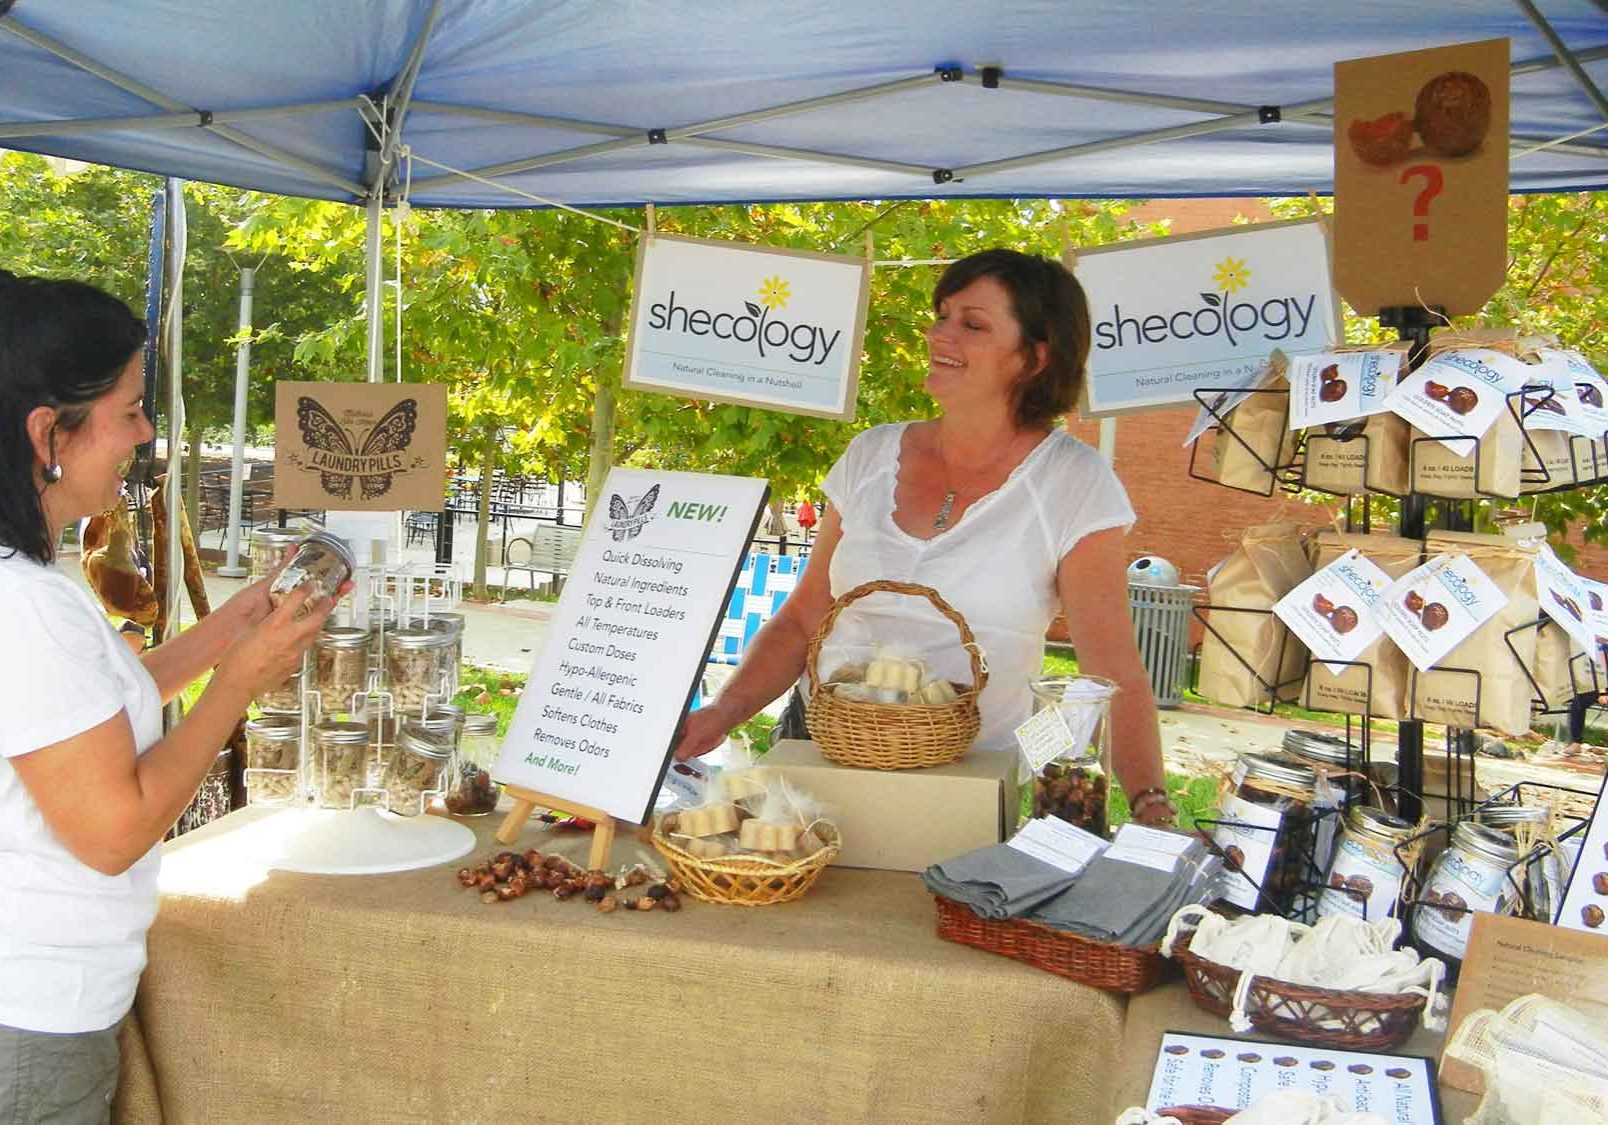 shecology-at-organicfest